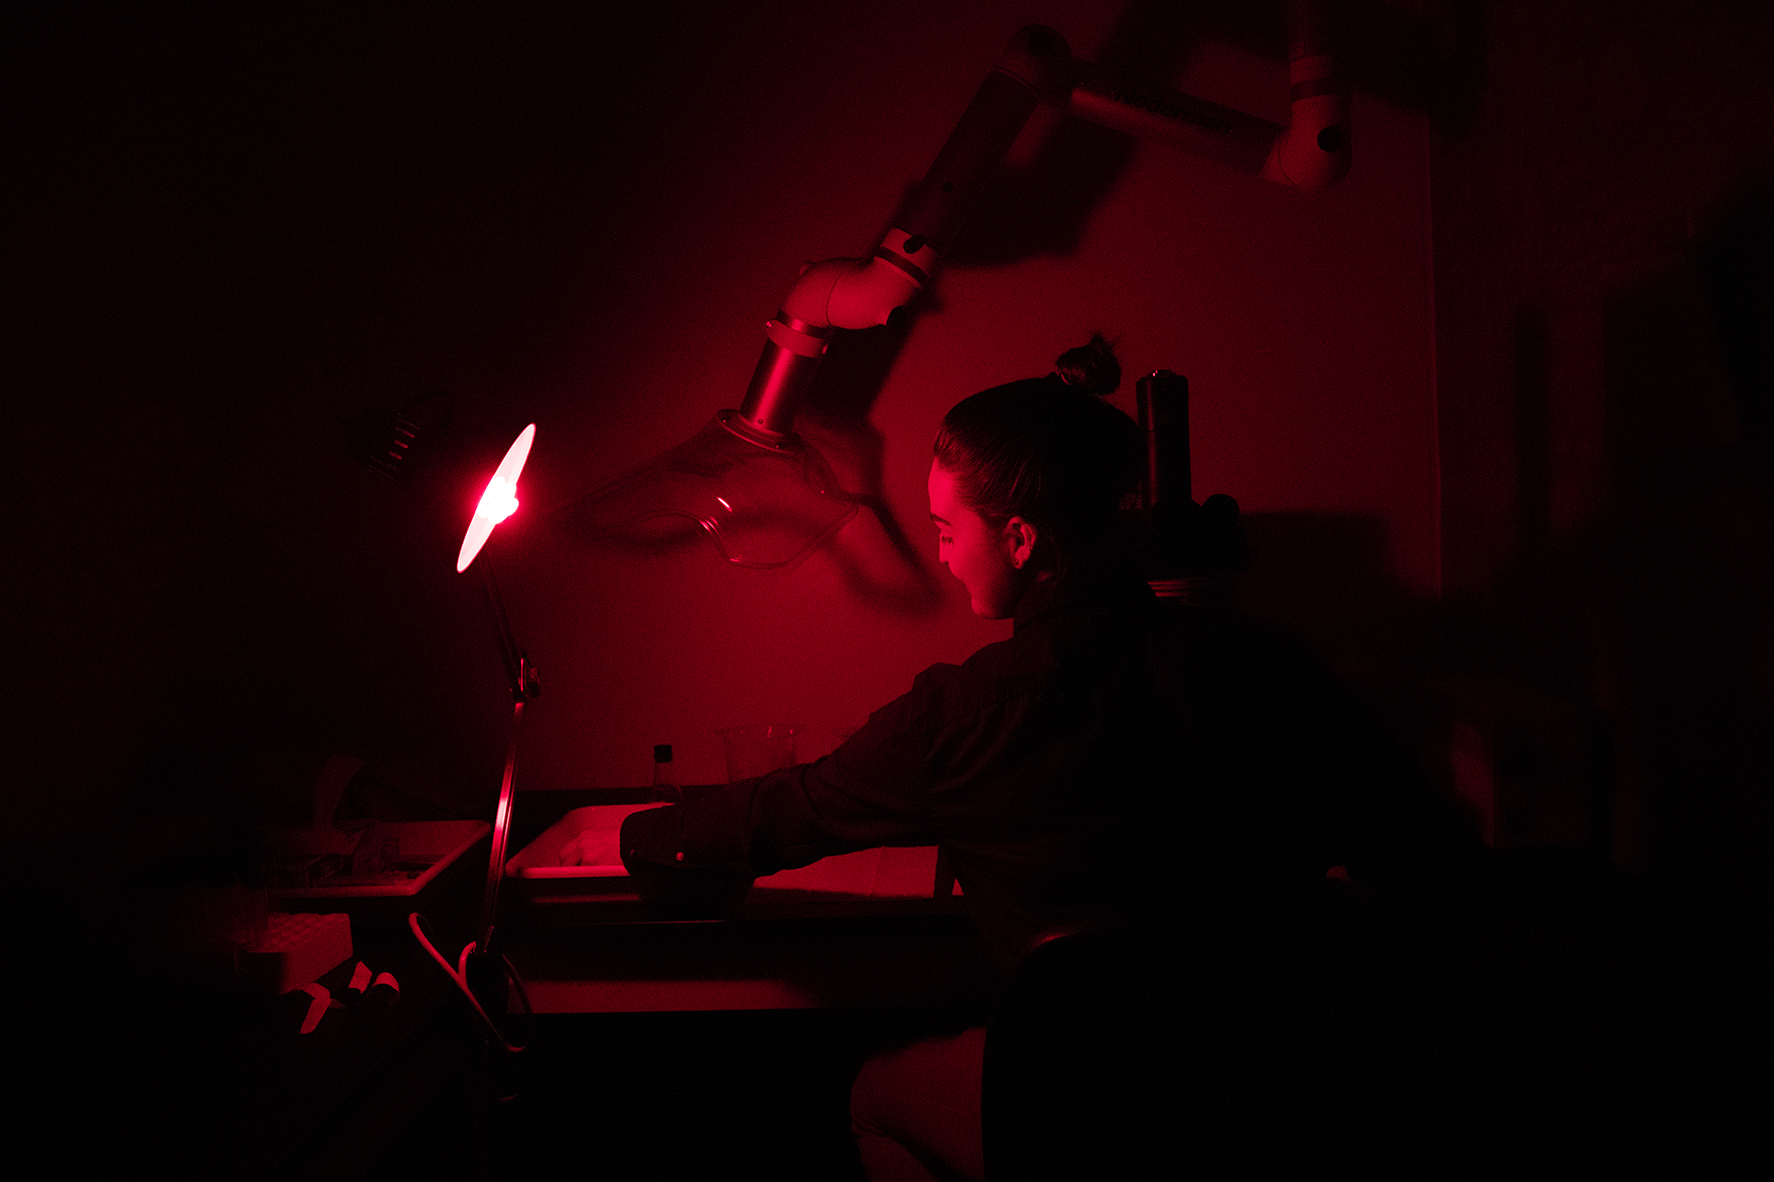 UW Tacoma student Caitlyn McFarland uses an epi-fluorescent research microscope, which makes an organism glow brightly under a mercury-vapor light. (Photo by Ryan Moriarty)